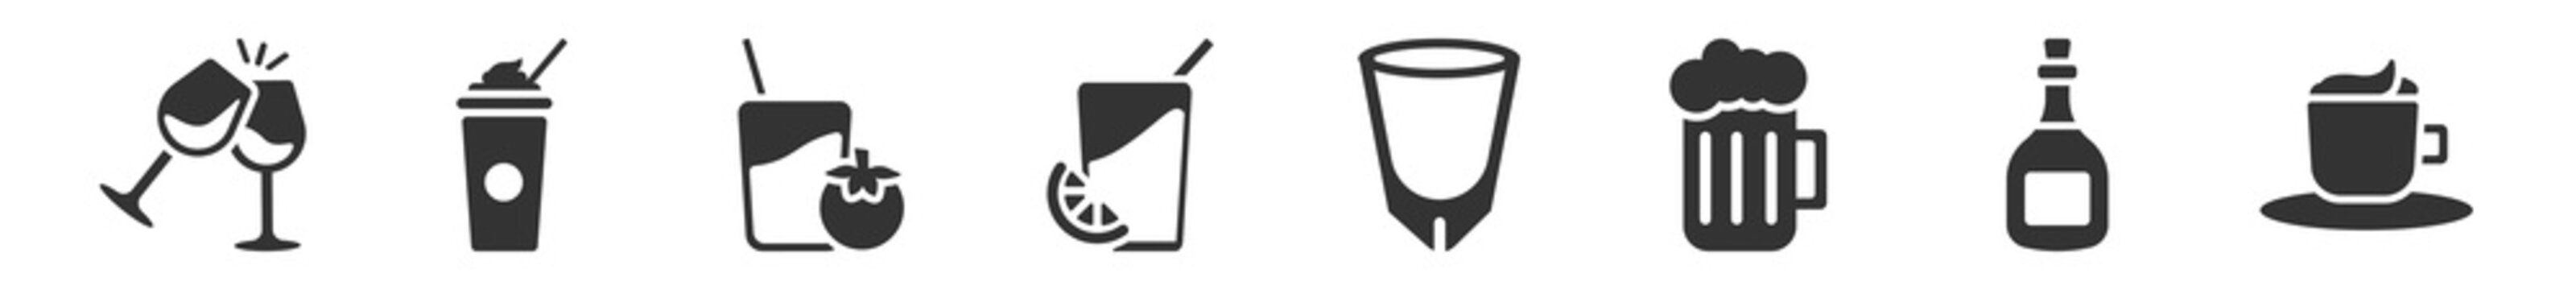 filled set of drinks icons. glyph vector icons such as wine toast, frappuccino, tomato juice, fruit juice, white russian drink, espresso. vector illustration.